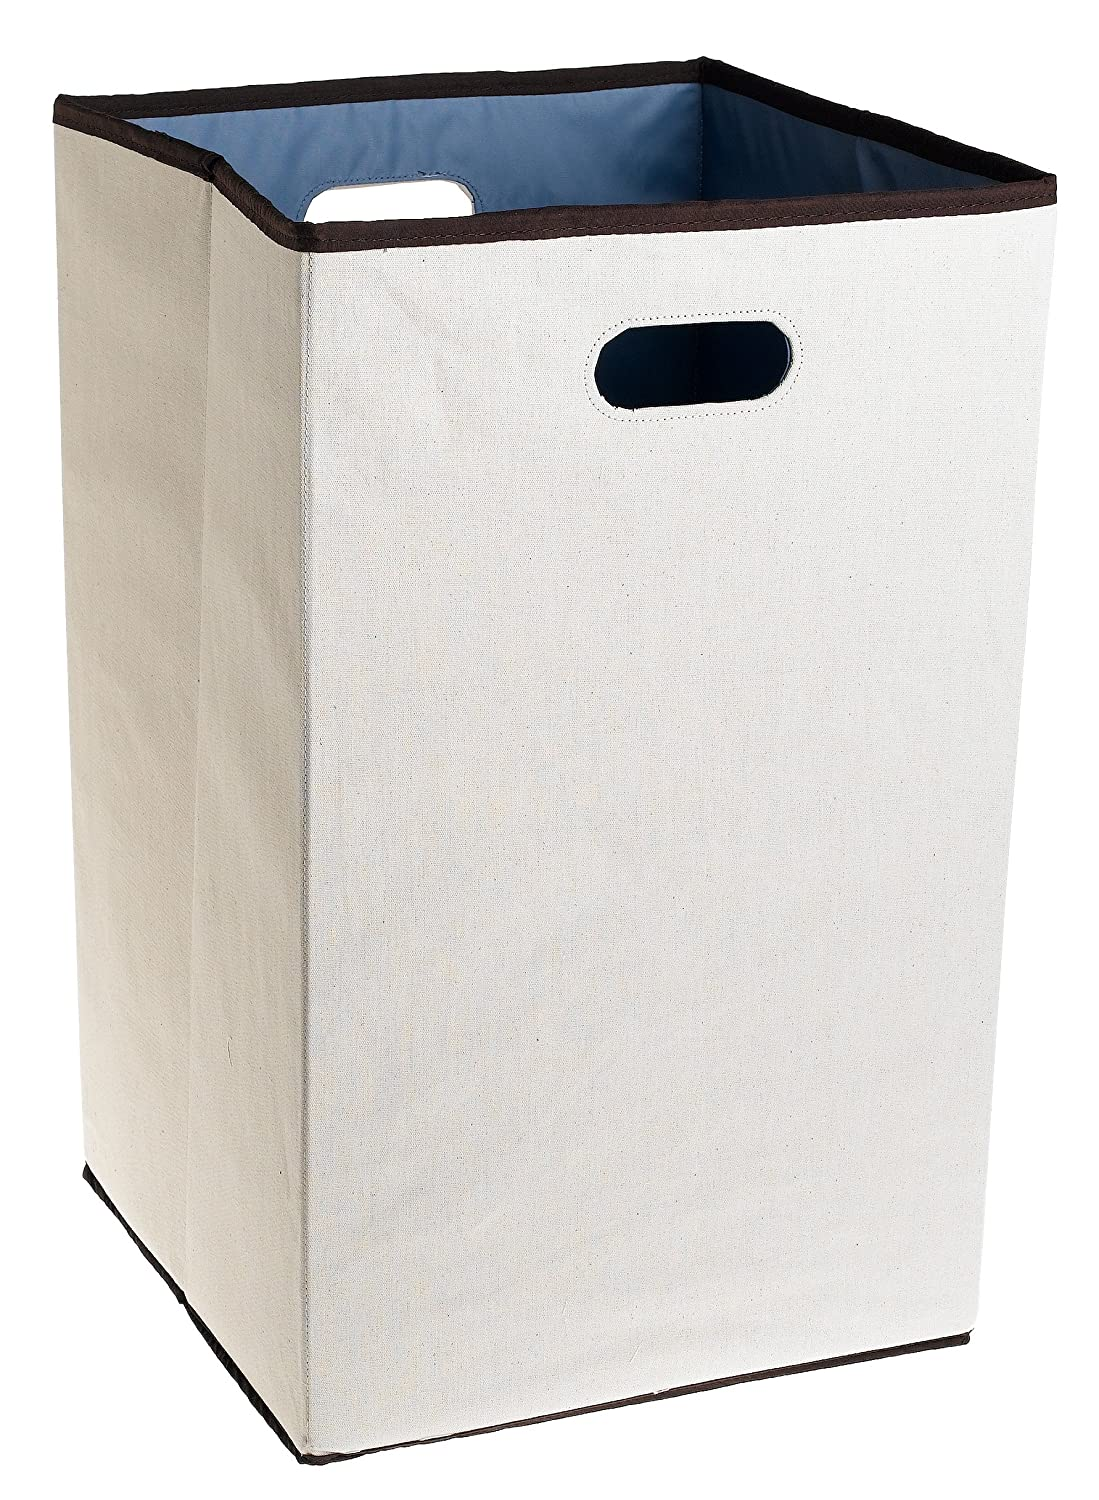 3 Basket Laundry Hamper Top 10 Hampers Laundry Sorters Grace Brooke Llc